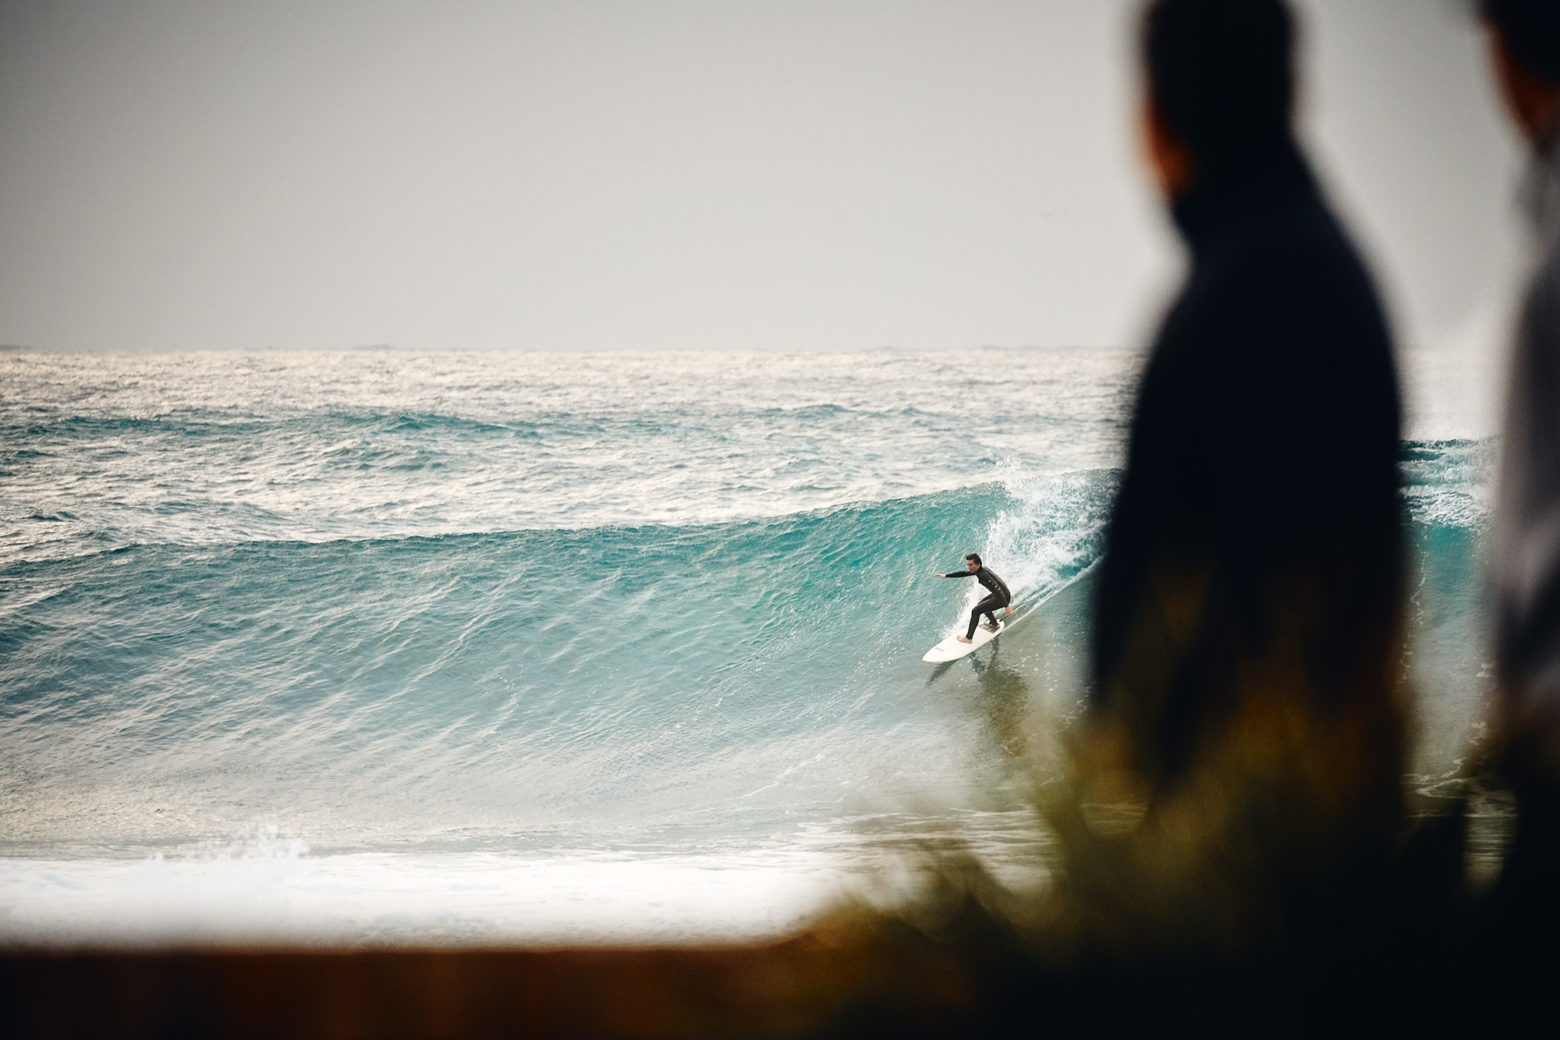 Bronte, walls for days!